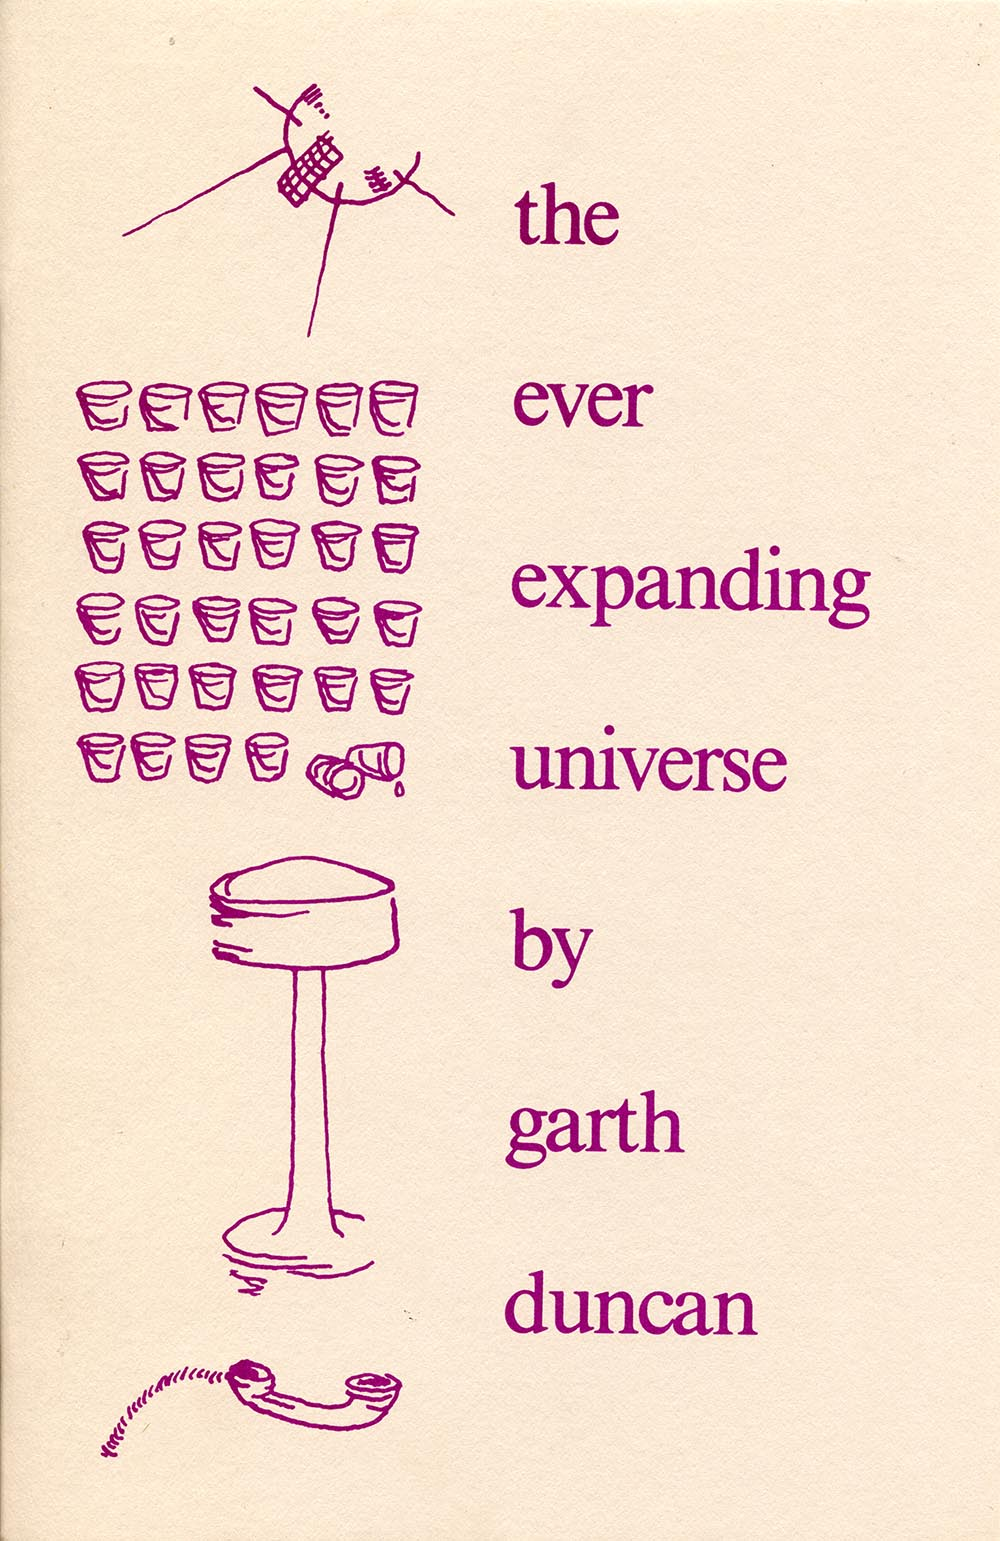 The Ever Expanding Universe by Garth Duncan